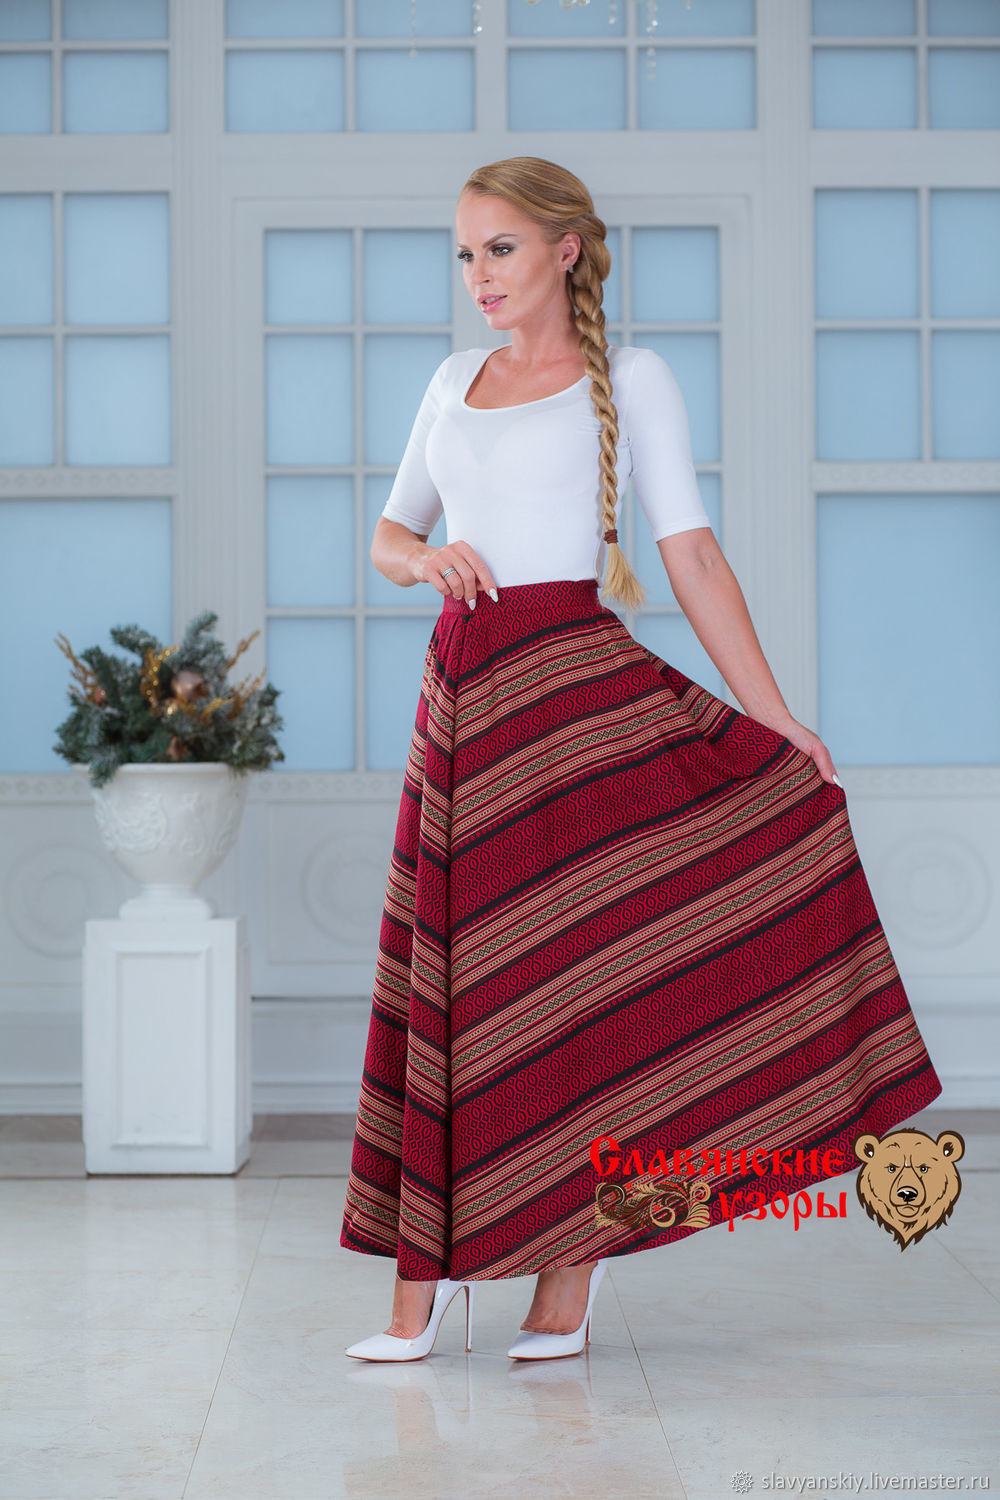 Warm skirt with pockets 'Christmas tree' red-Burgundy, Skirts, St. Petersburg,  Фото №1